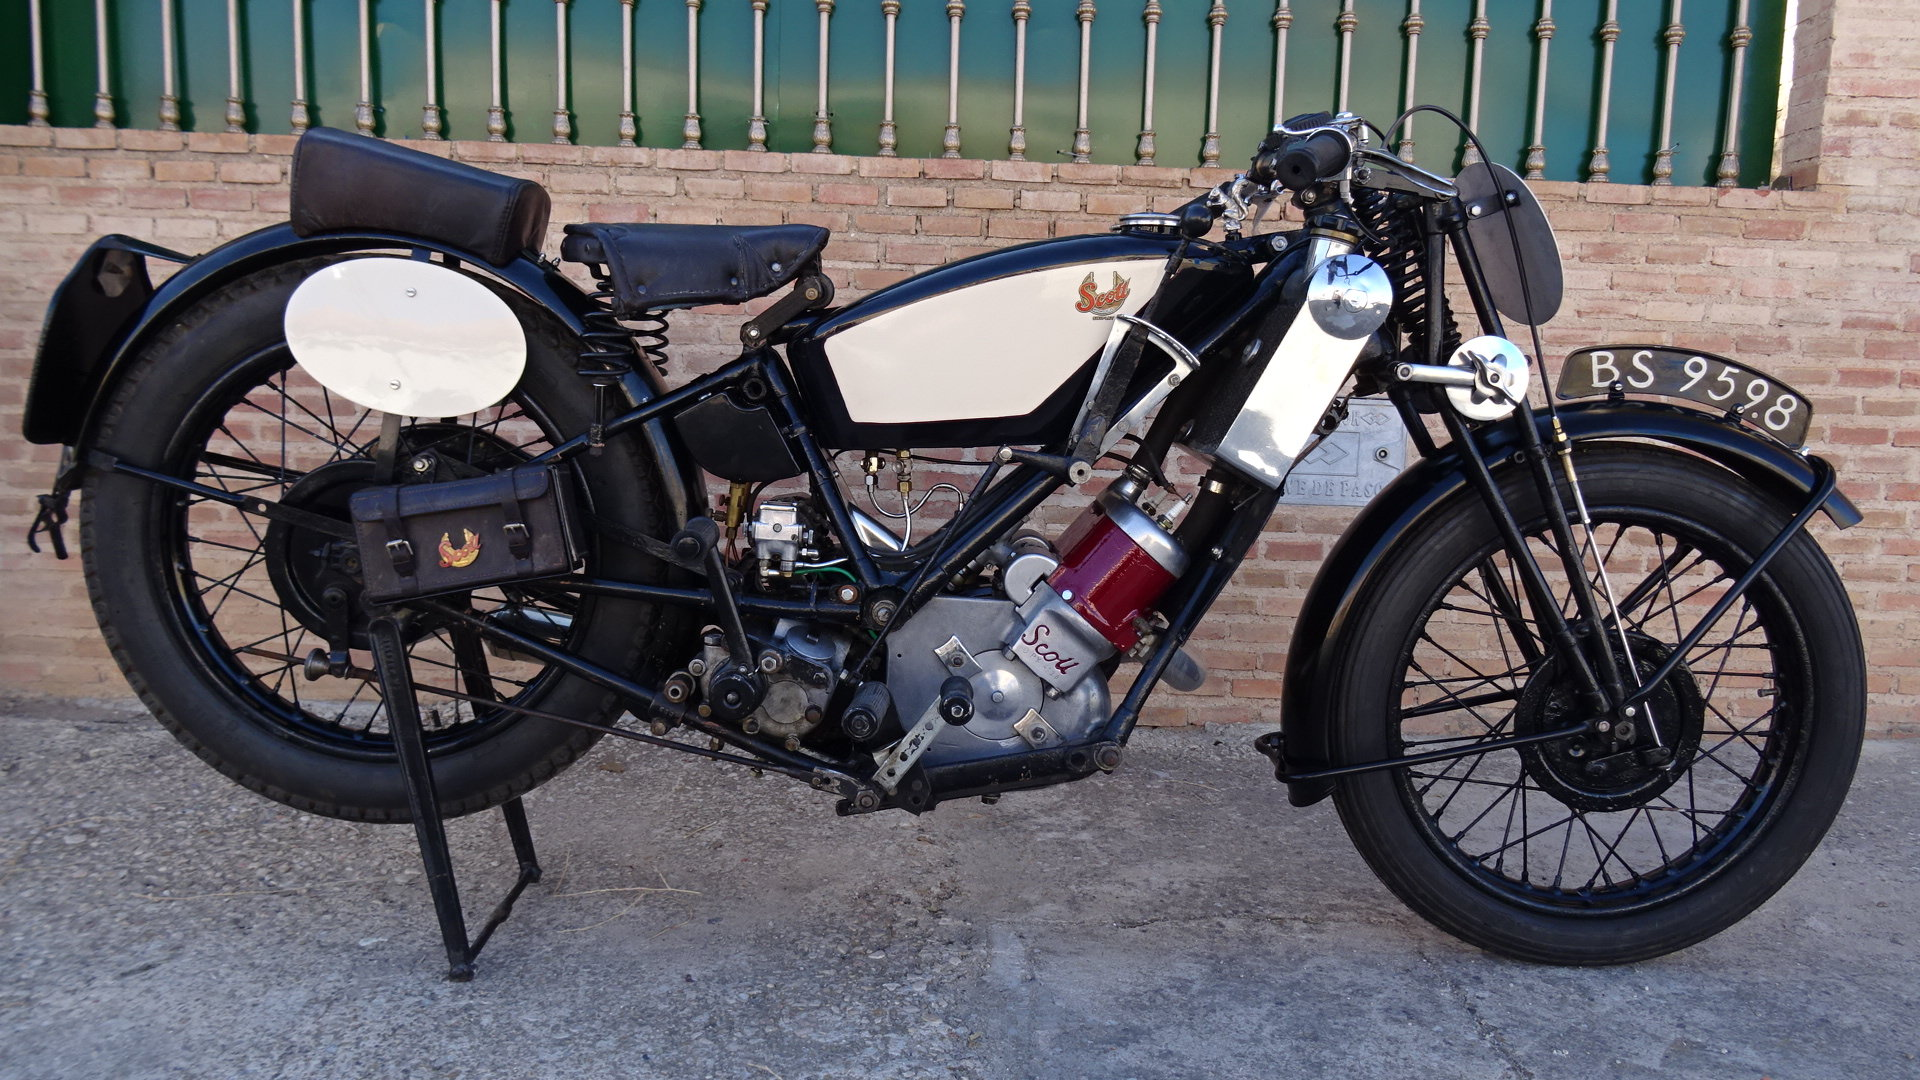 1926 Scott flying squirrel 596cc type tt racer For Sale (picture 1 of 6)